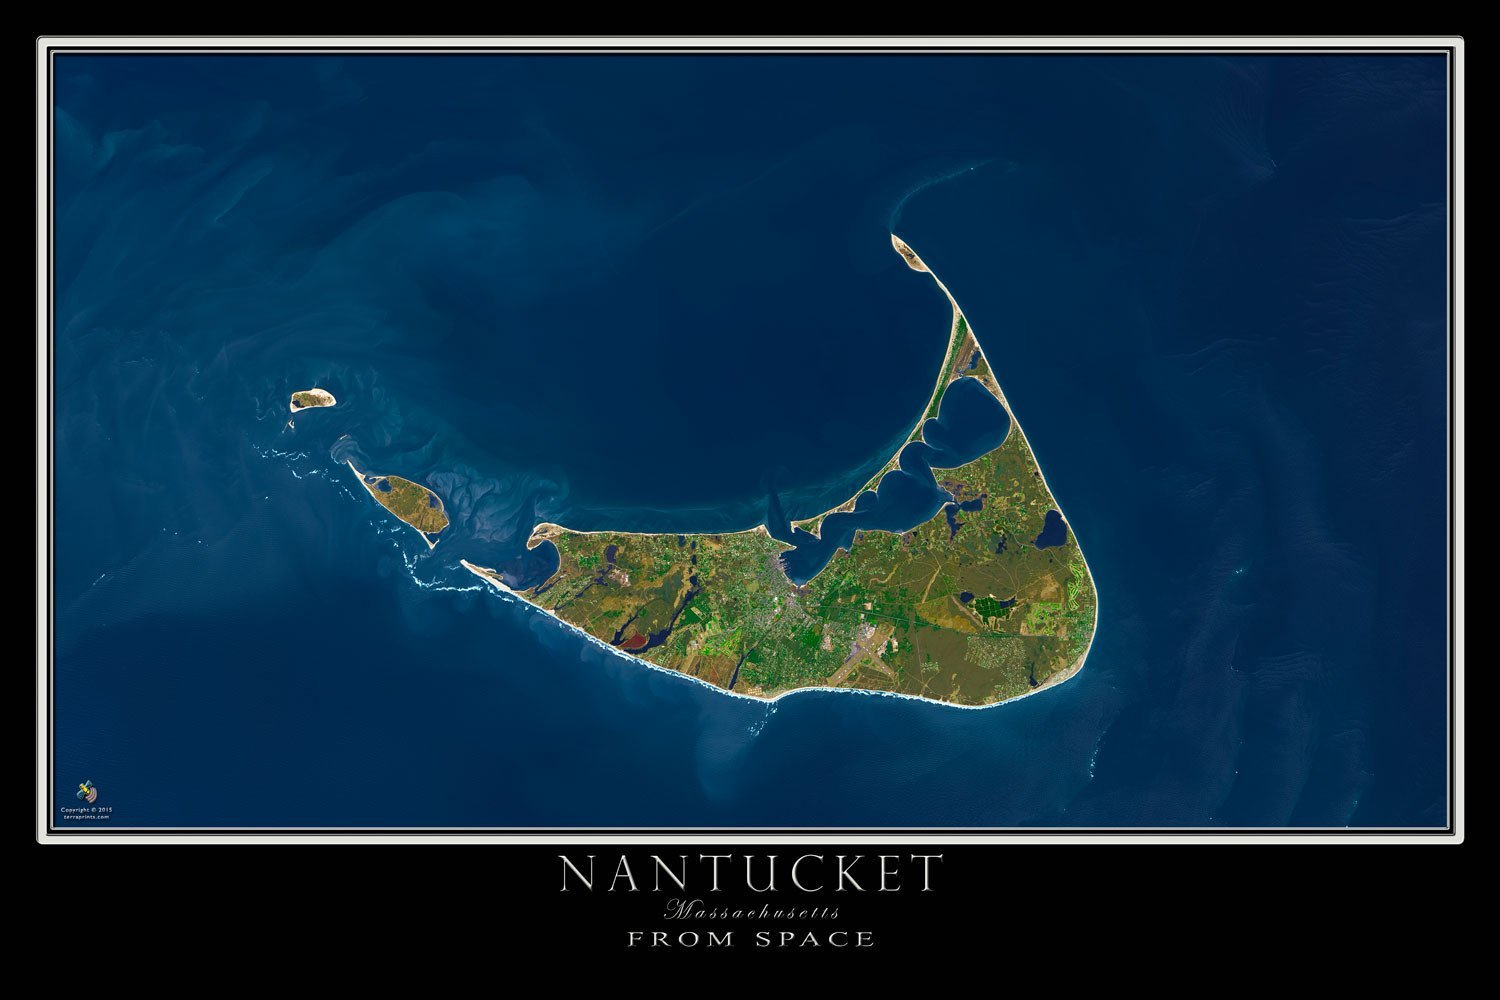 Amazon.com: Nantucket Machusetts Satellite Poster Map L ... on map of ships at sea, map of planes, map of towers, map of astronomy, map of nukes, map of media, map of servers, map of data, map of meteorites, map of aviation, map of physical, map of black holes, map of sun, map of environment, map of solar, map of maps, map of the electrical grid, map of sensors, map of electronics, map of cell phones,